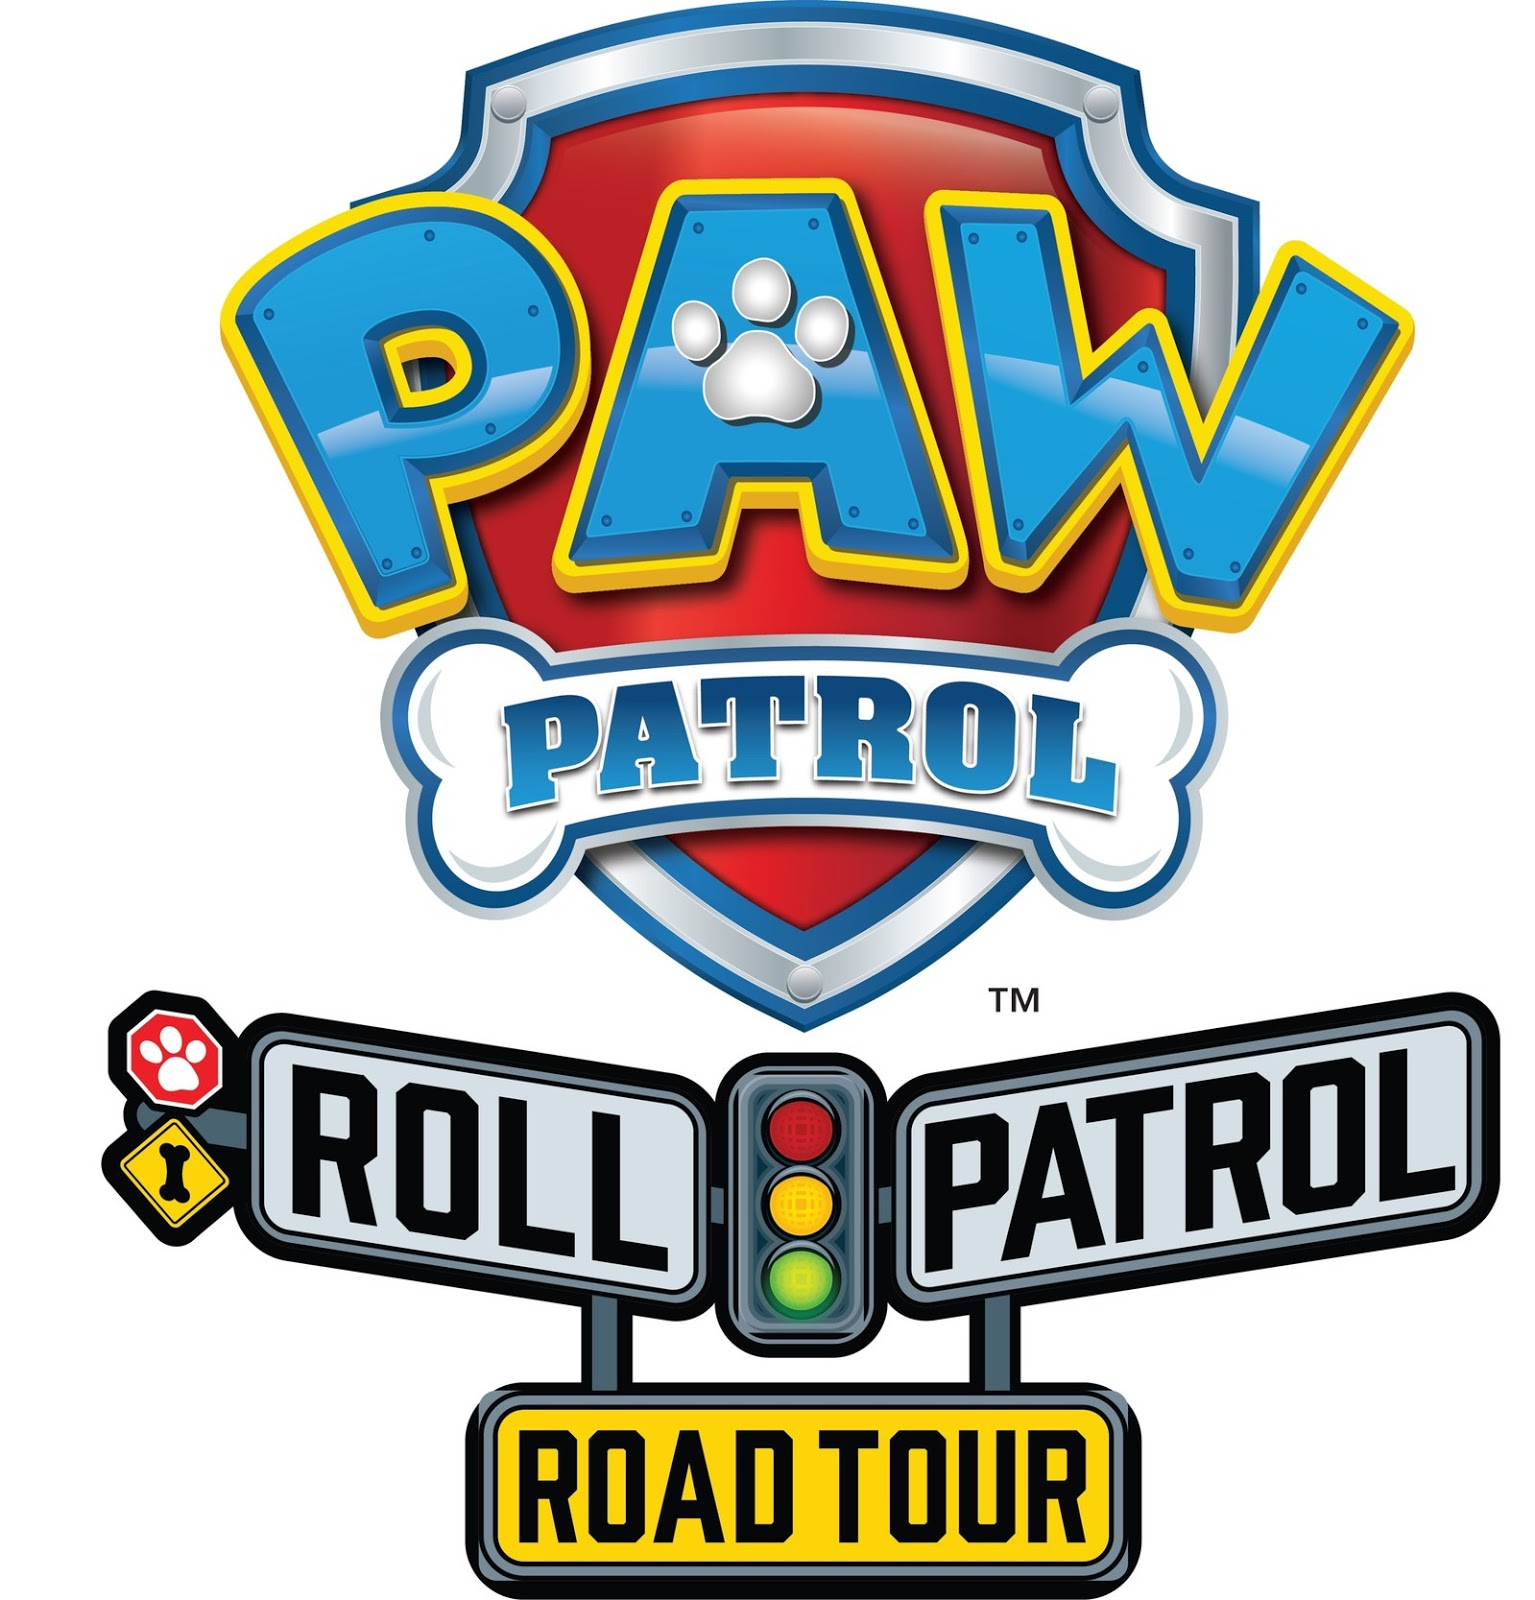 NickALive!: Spin Master Announces Expanded North American PAW Patrol Roll Patrol Road Tour for 2017